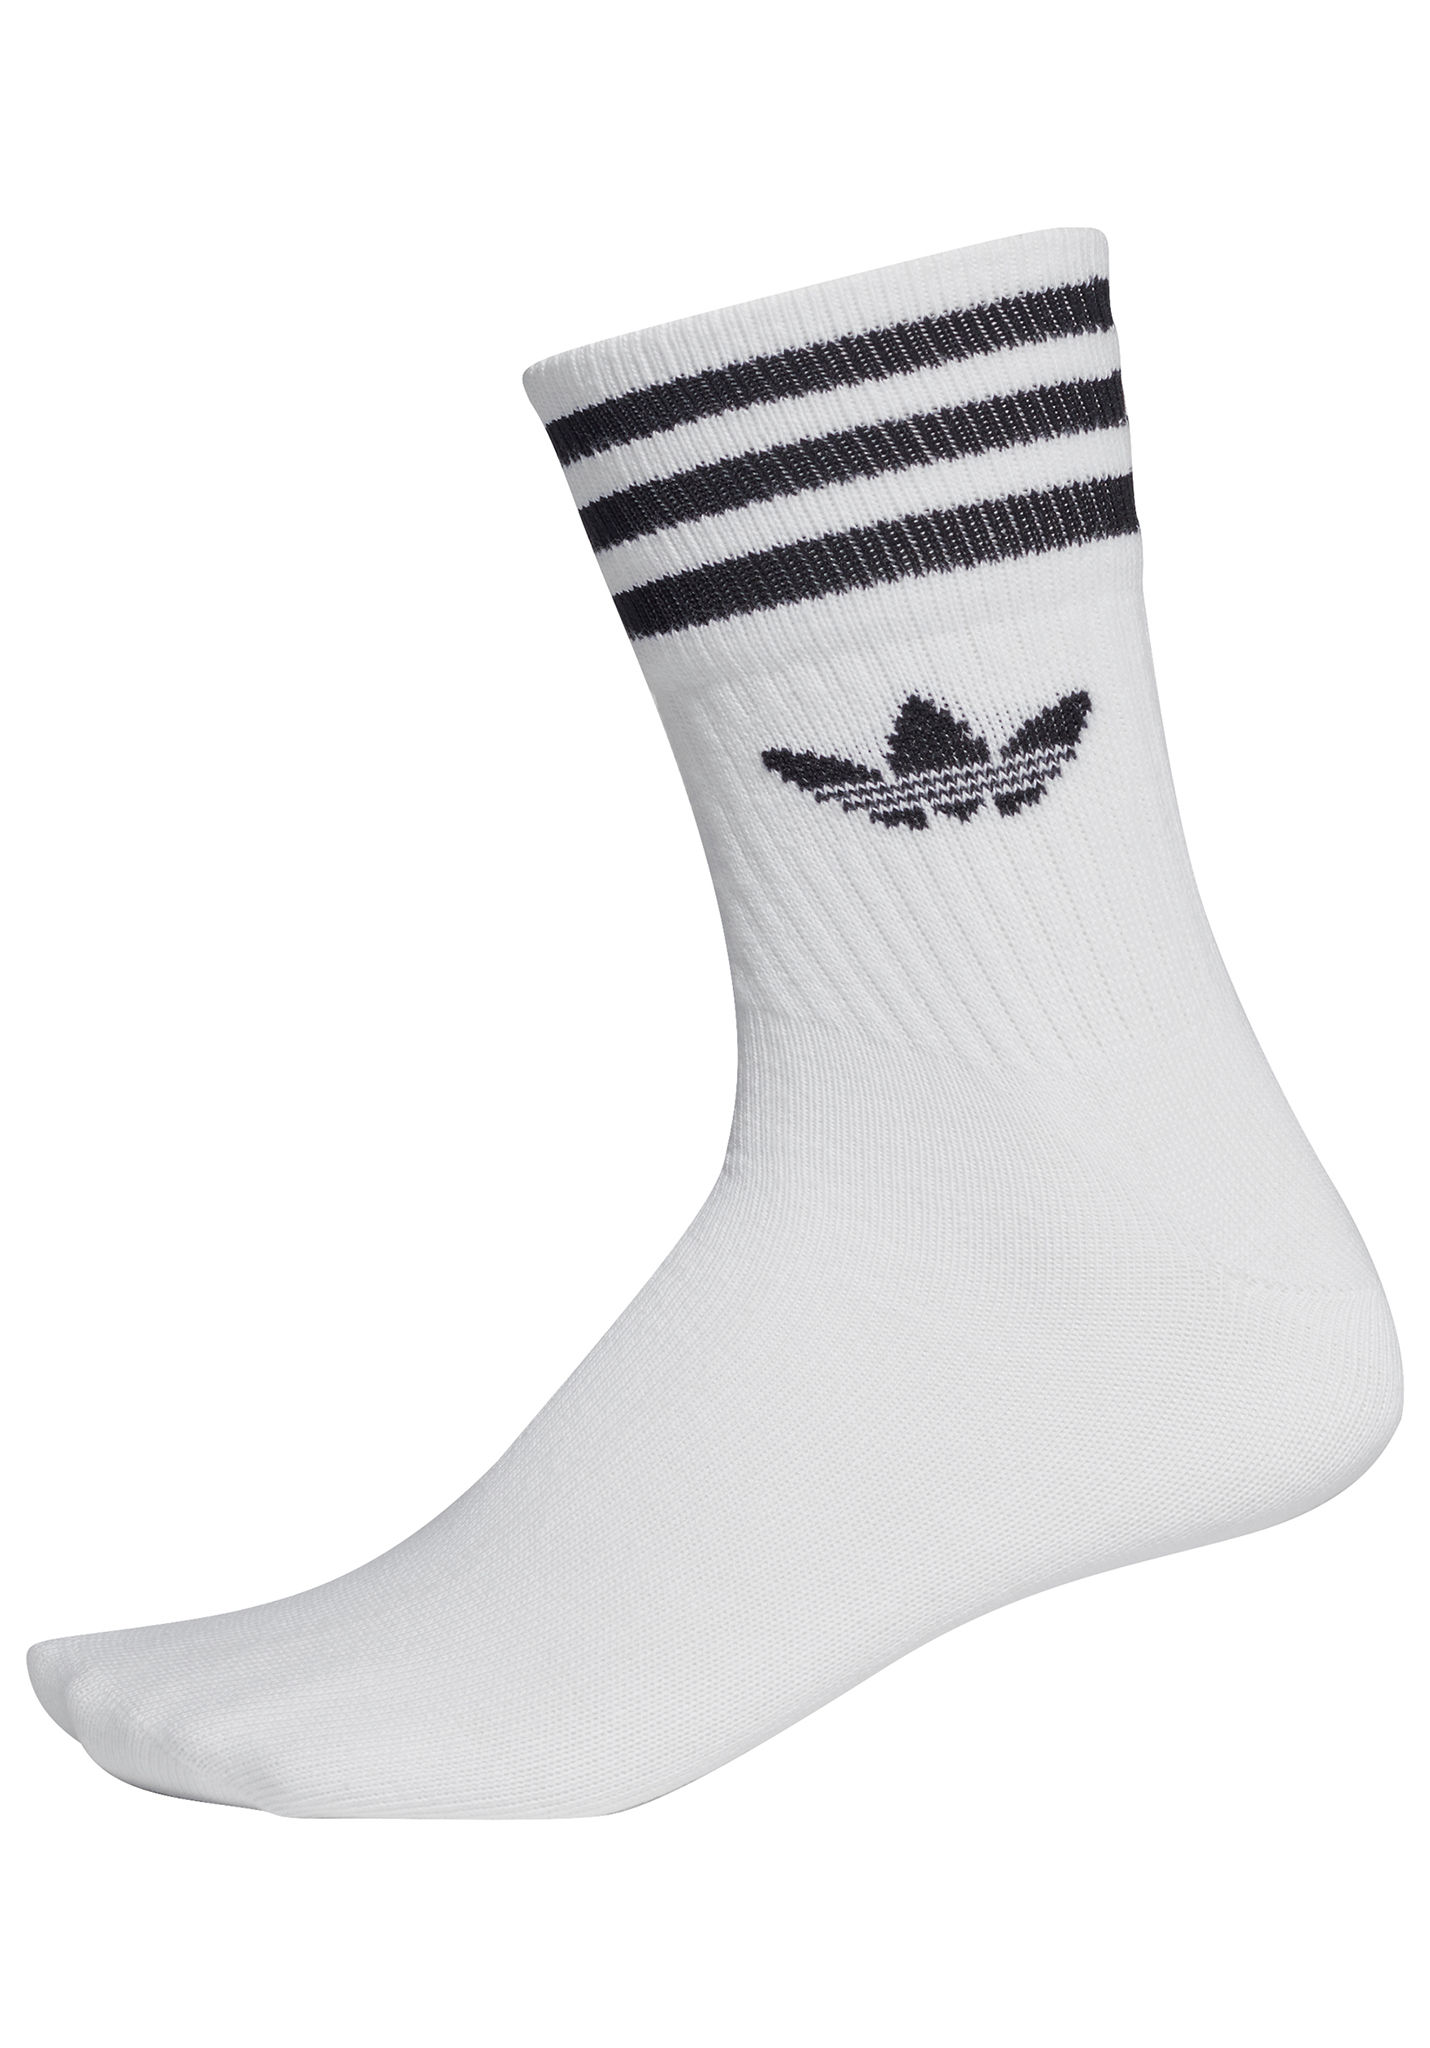 adidas Originals Mid Cut Crew - Socken - Weiß